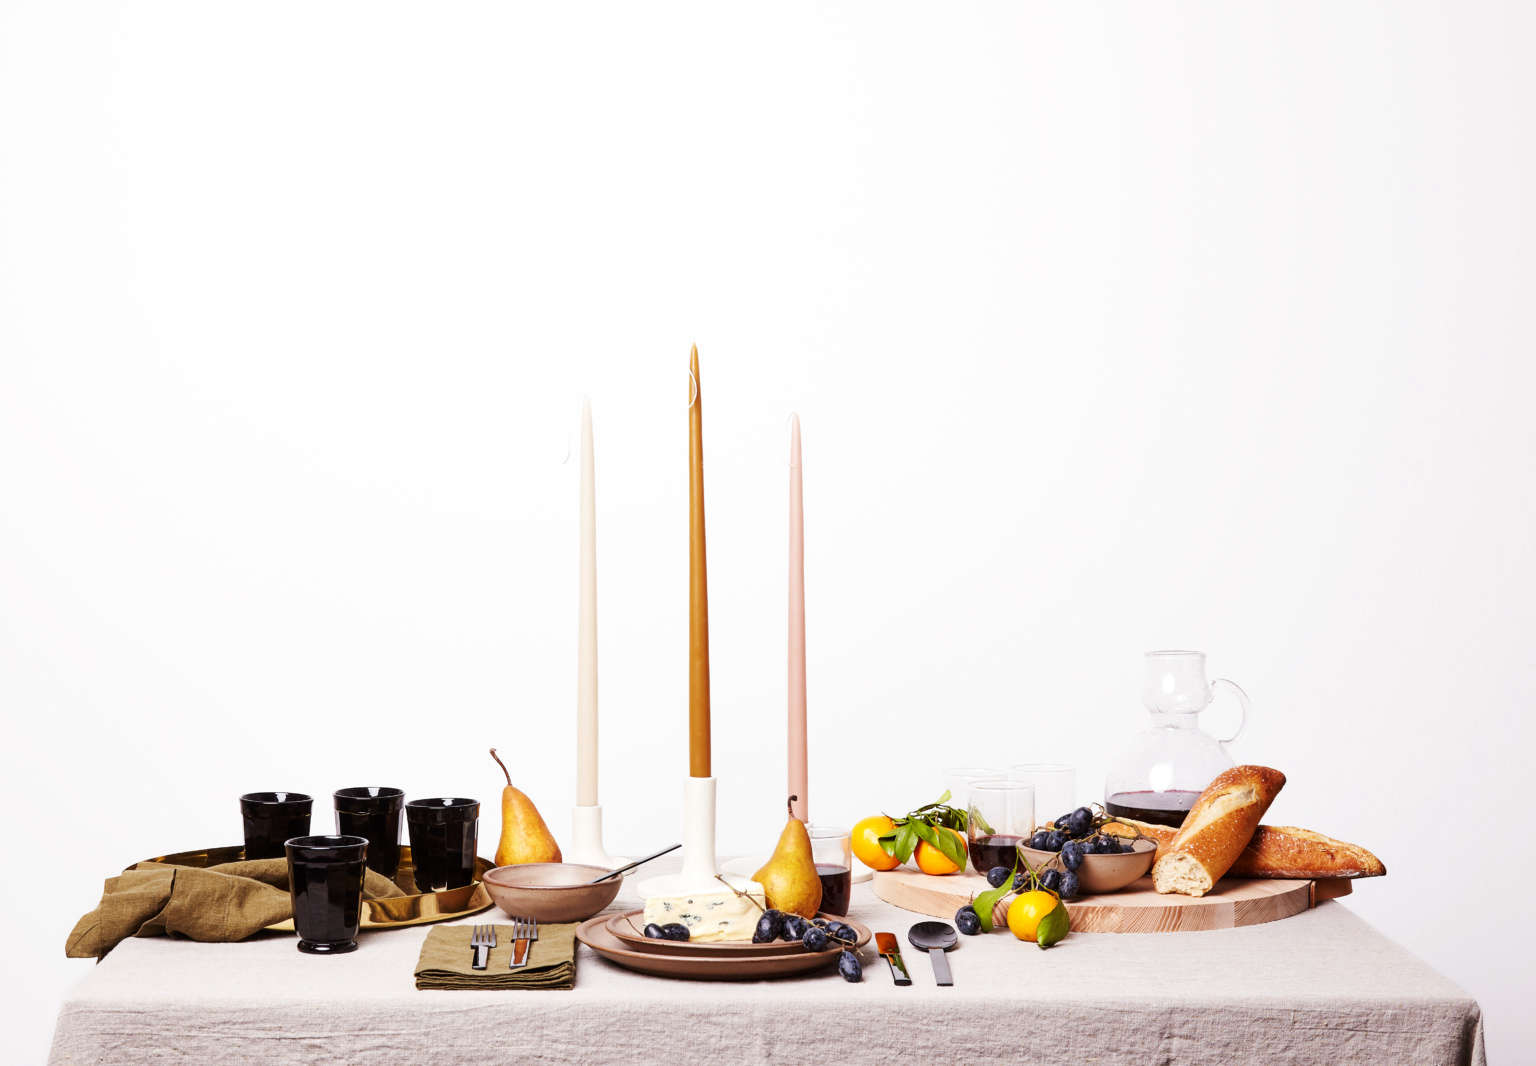 Enter to Win a Holiday Tablescape Curated by the Editors of Remodelista